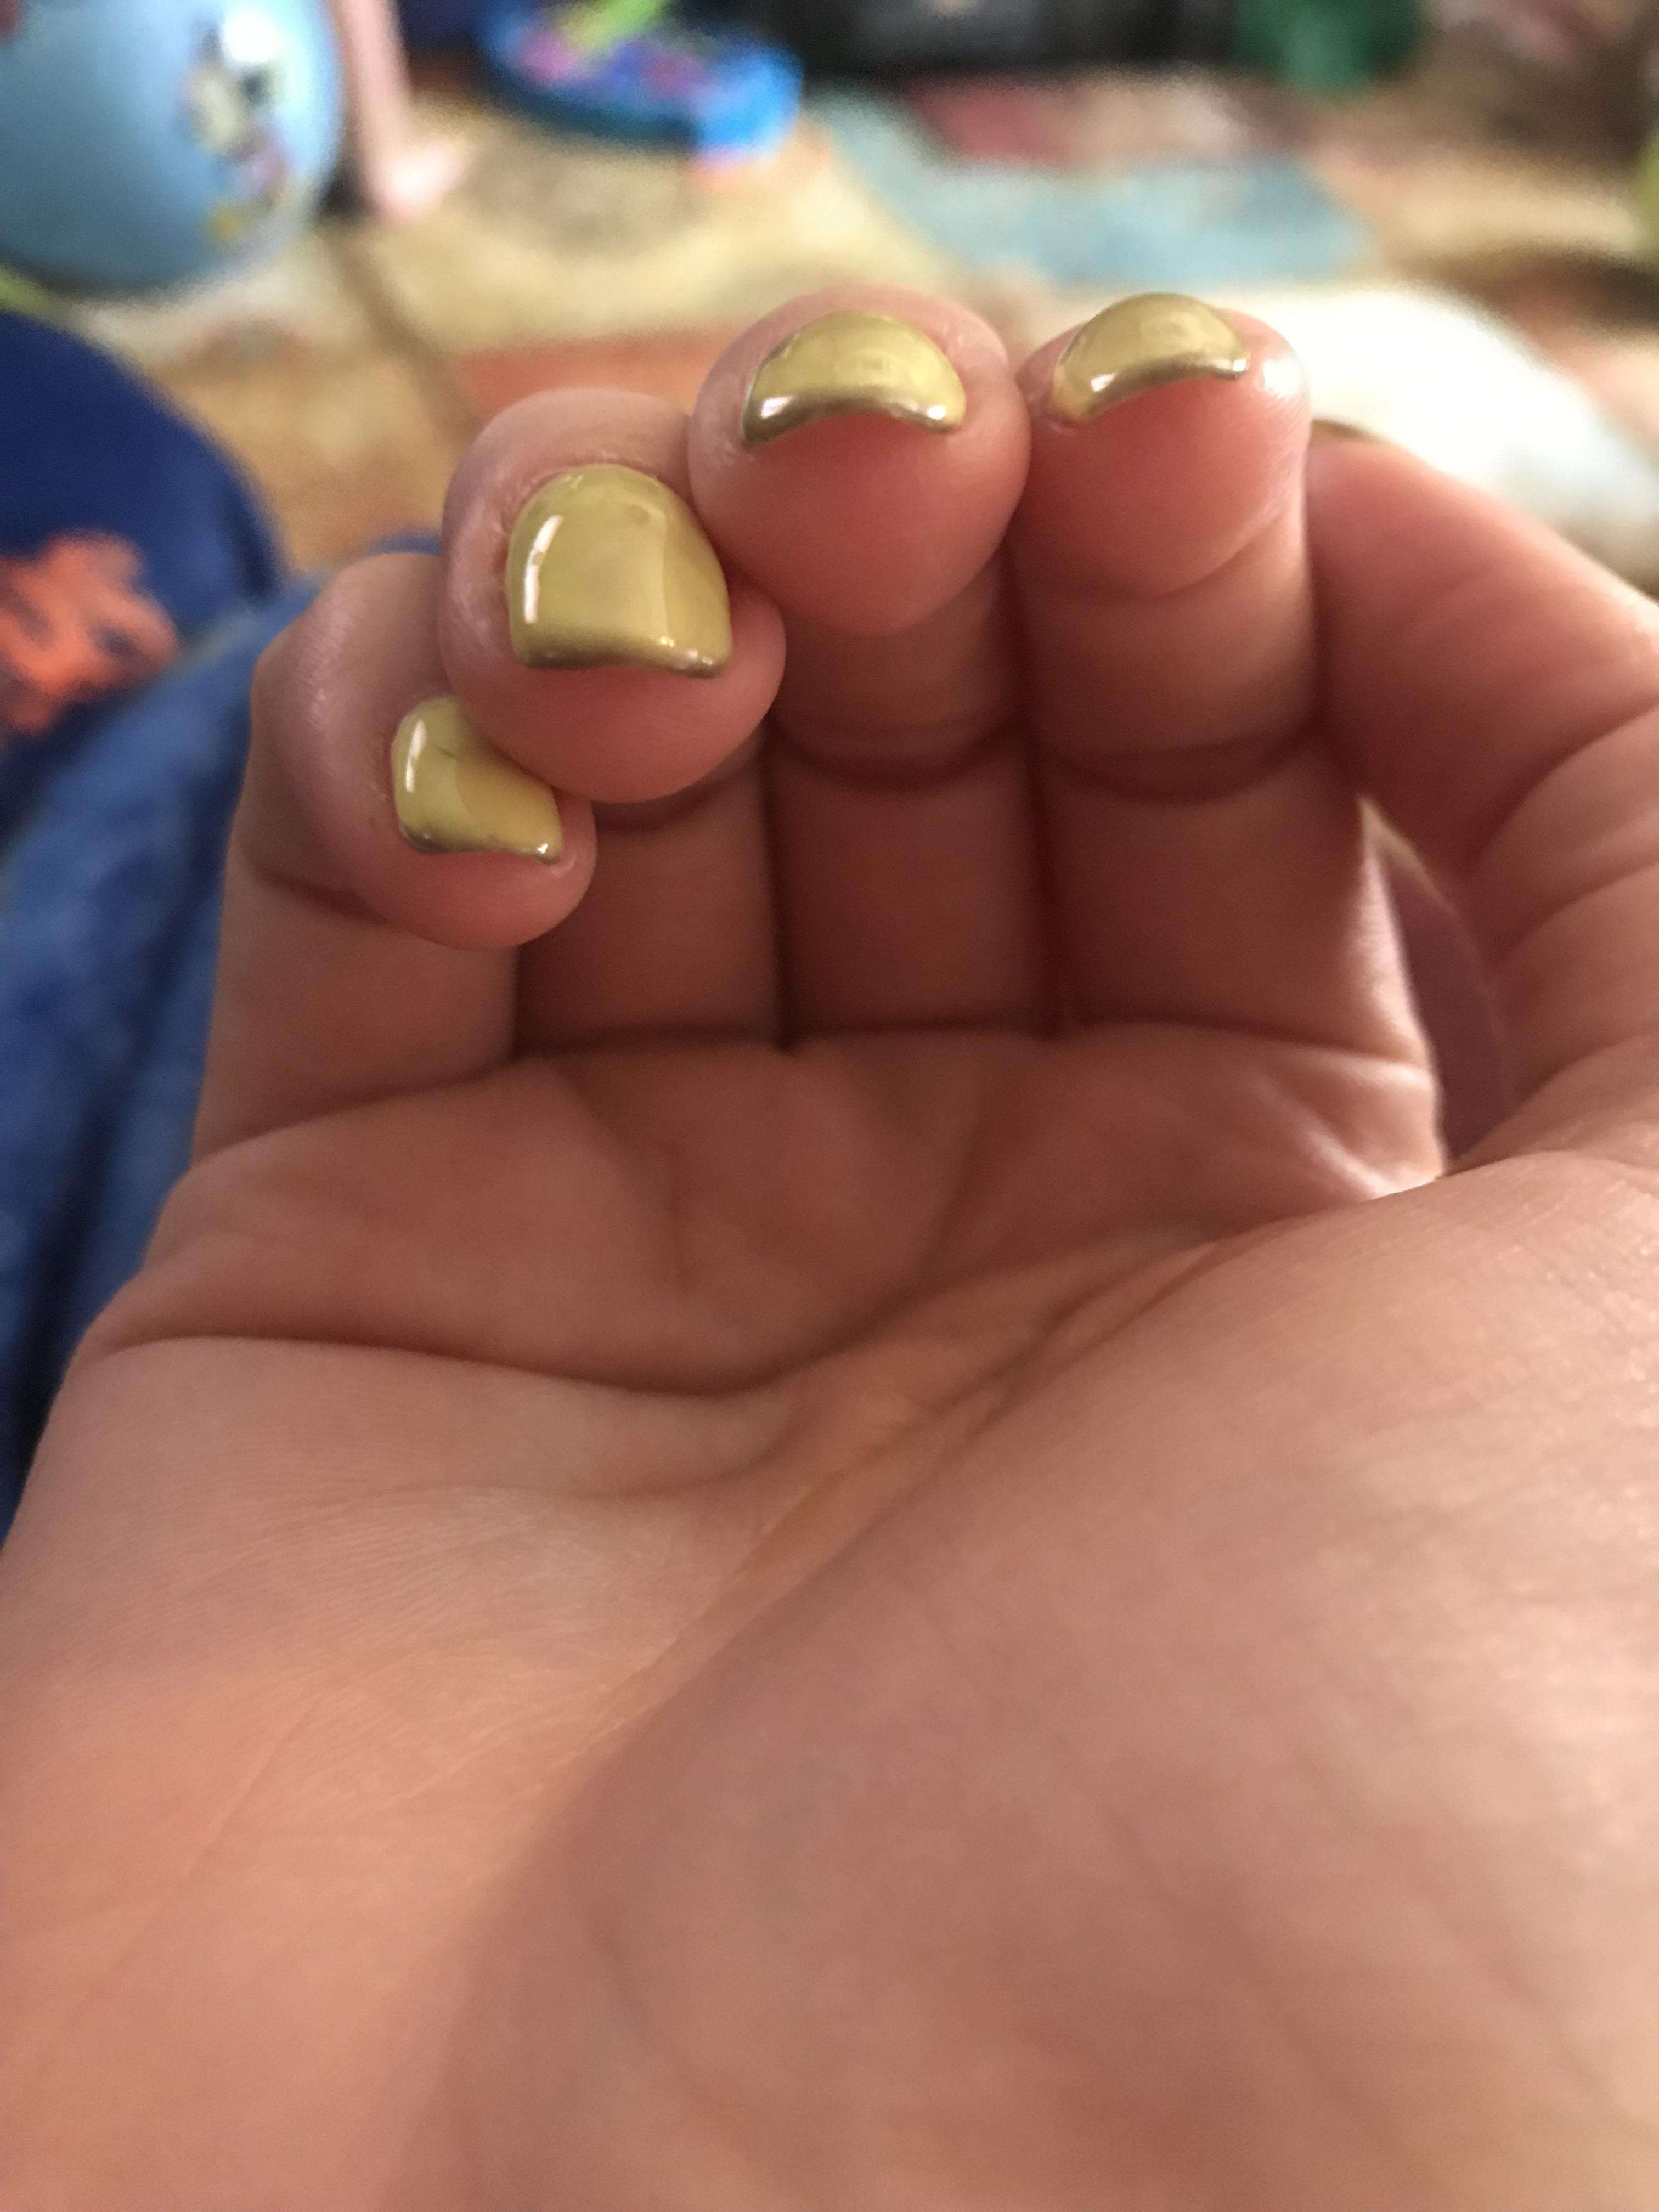 How To Clean Stained Gel Nails : clean, stained, nails, Nails, Turning, Black?, RedditLaqueristas